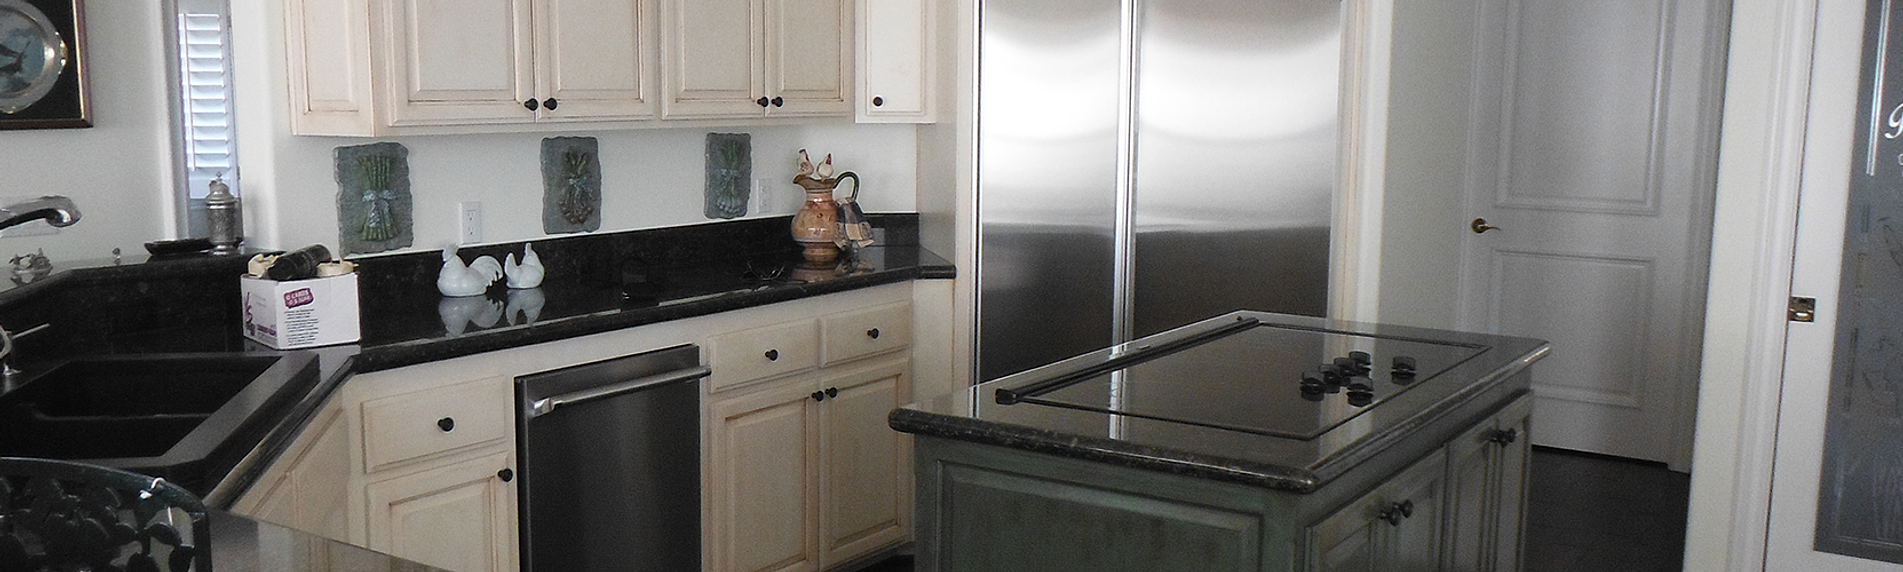 kitchenremodelingmasters kitchen remodel san diego San Diego County Kitchen Cabinets